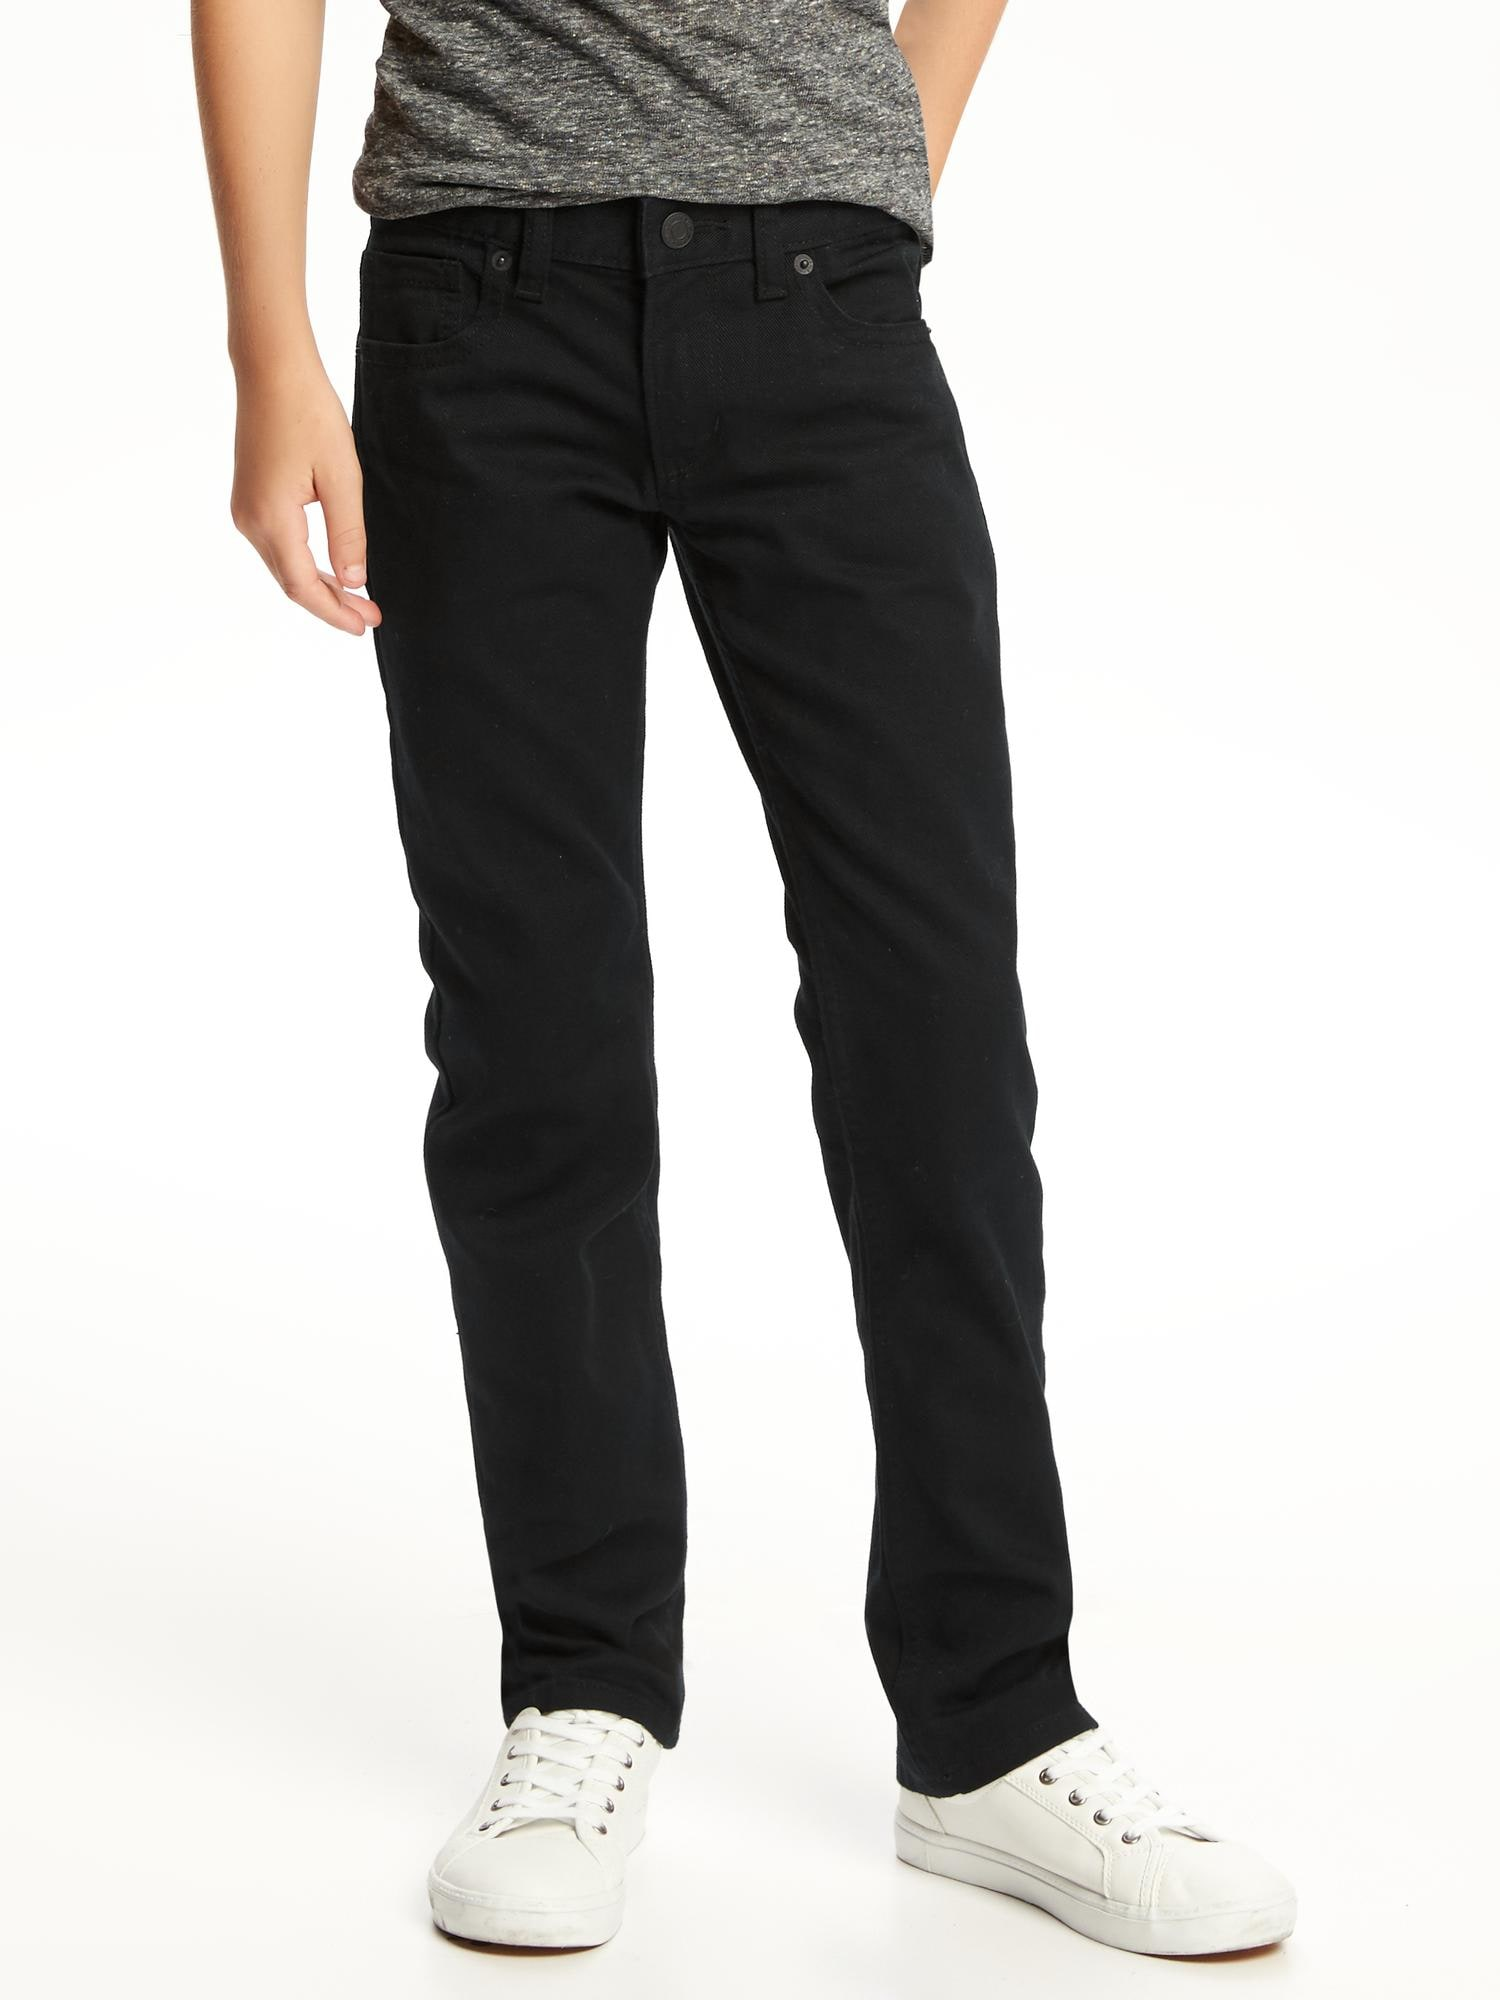 *Hot Deal* Skinny Non-Stretch Jeans for Boys